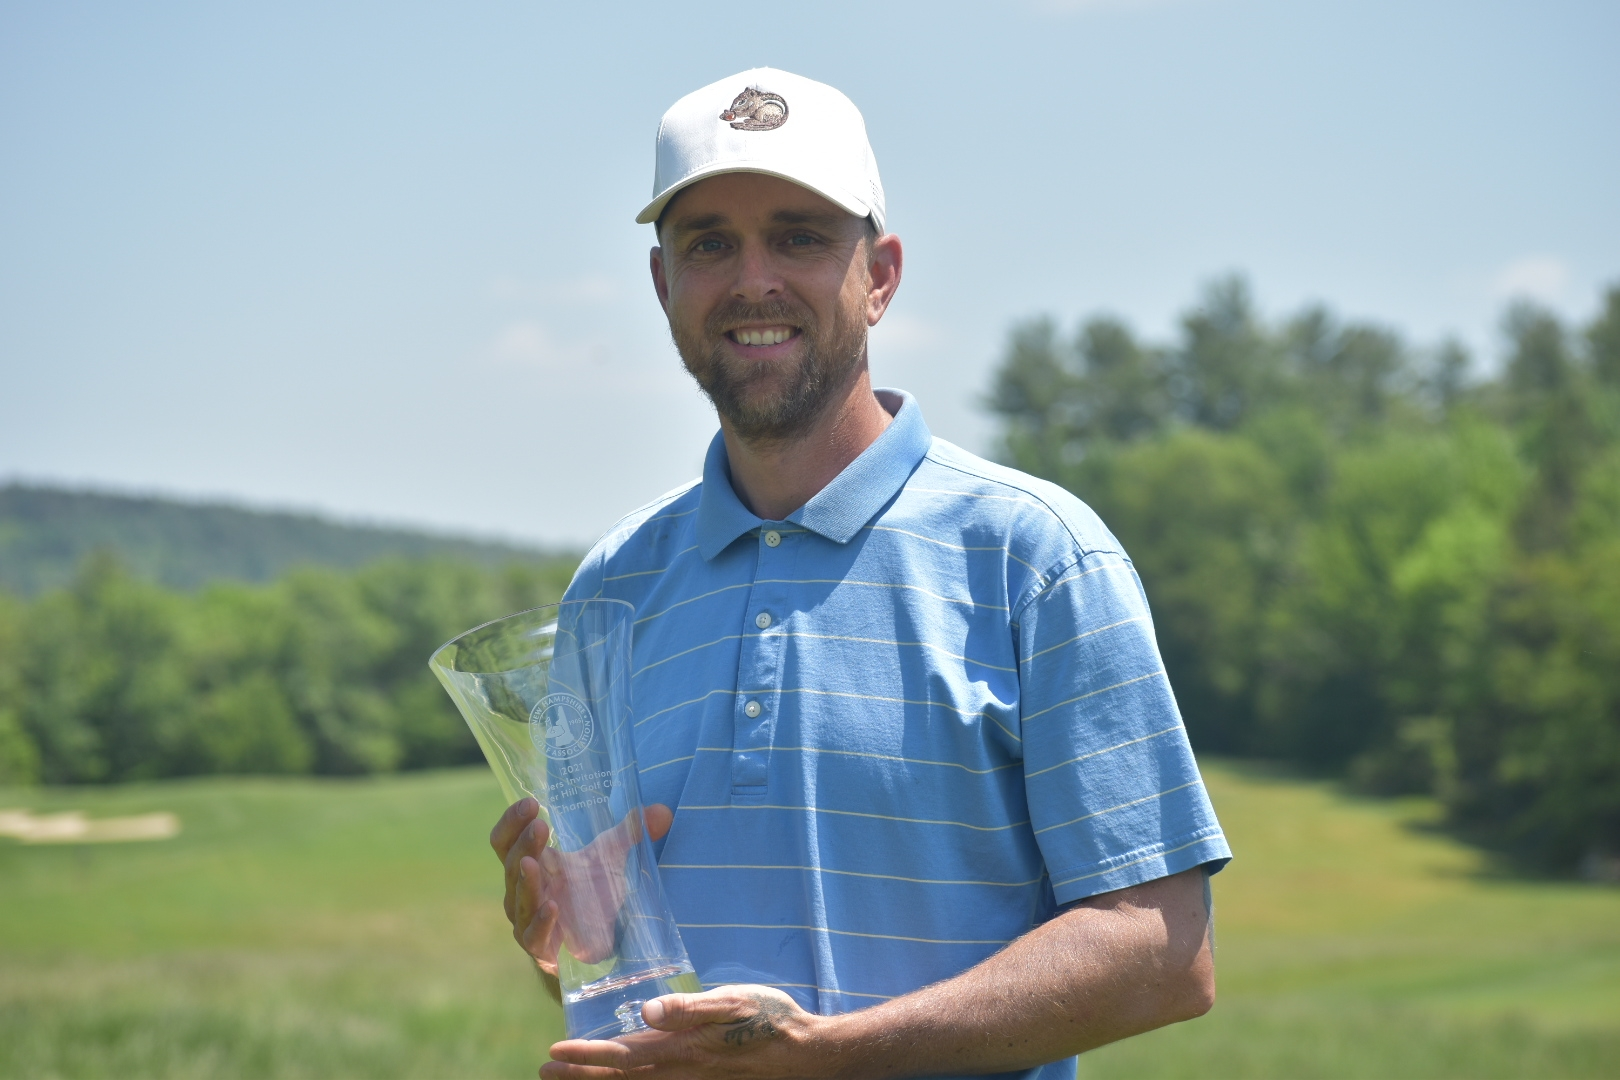 Groft Goes Under Par in Final Round to Win Players Invitational; Fournier Works His Way to the Top to Win Senior Division